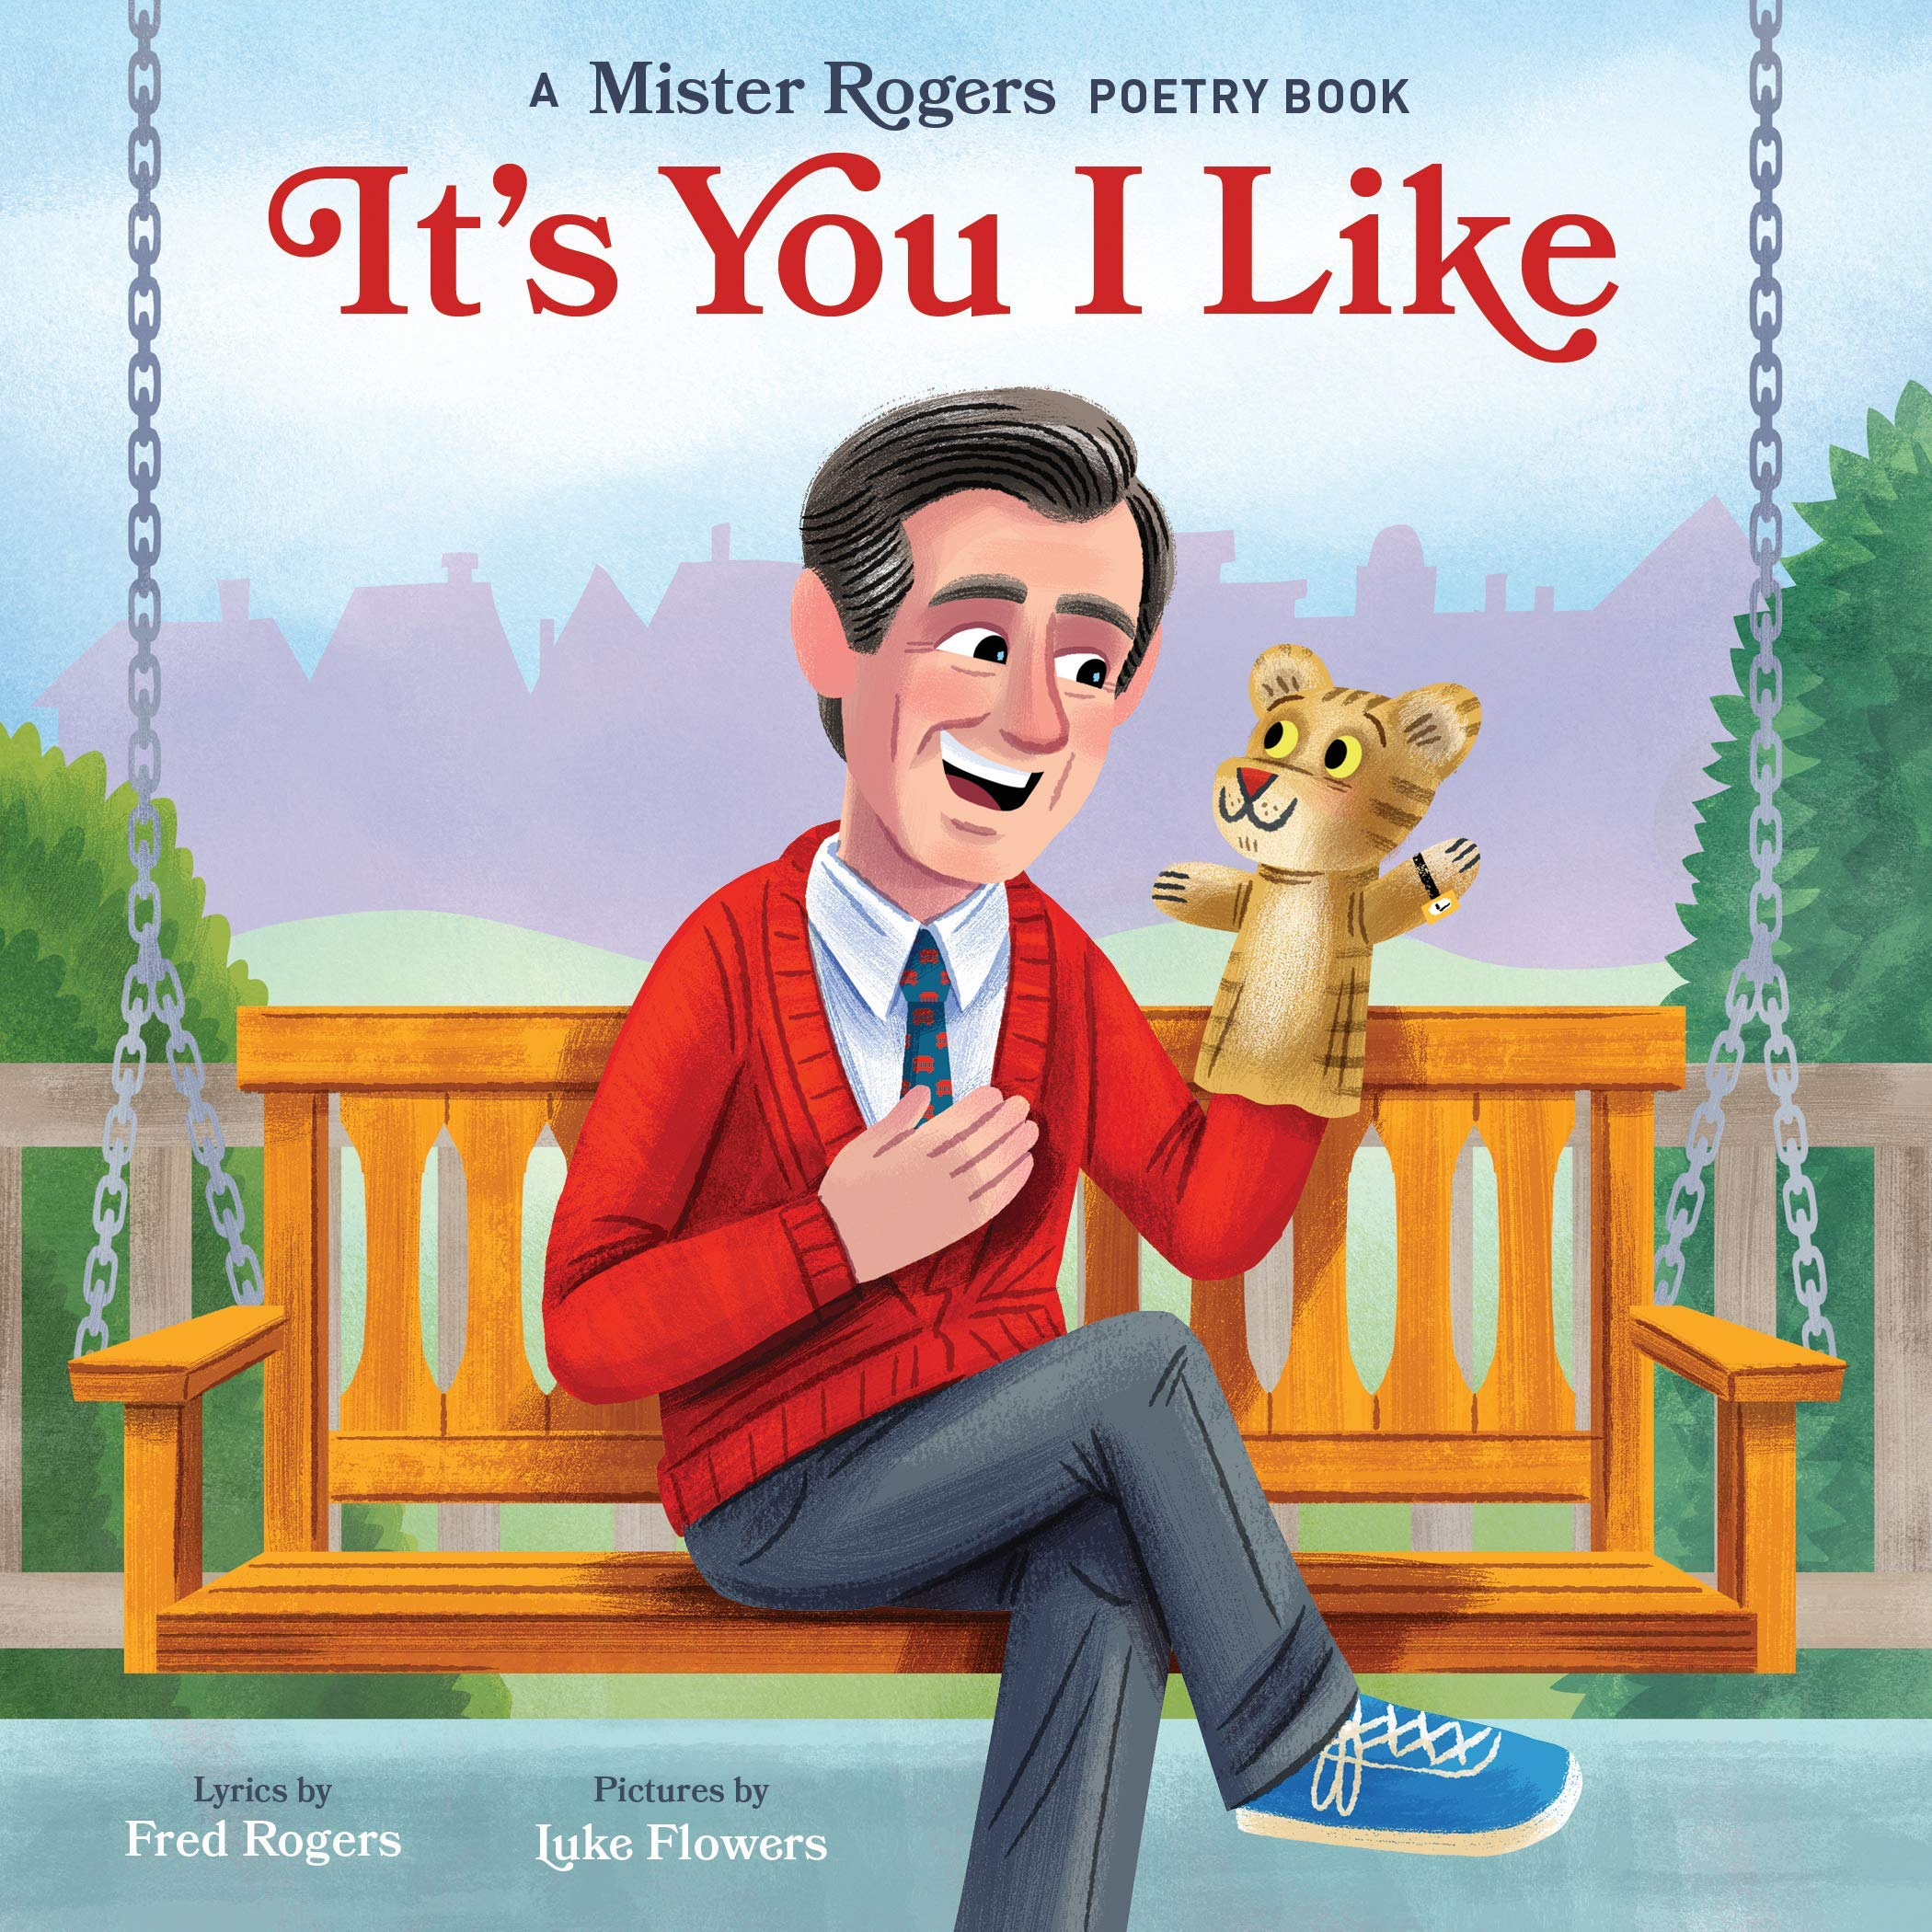 It S You I Like A Mister Rogers Poetry Book Mister Rogers Poetry Books Rogers Fred Flowers Luke 9781683692010 Amazon Com Books